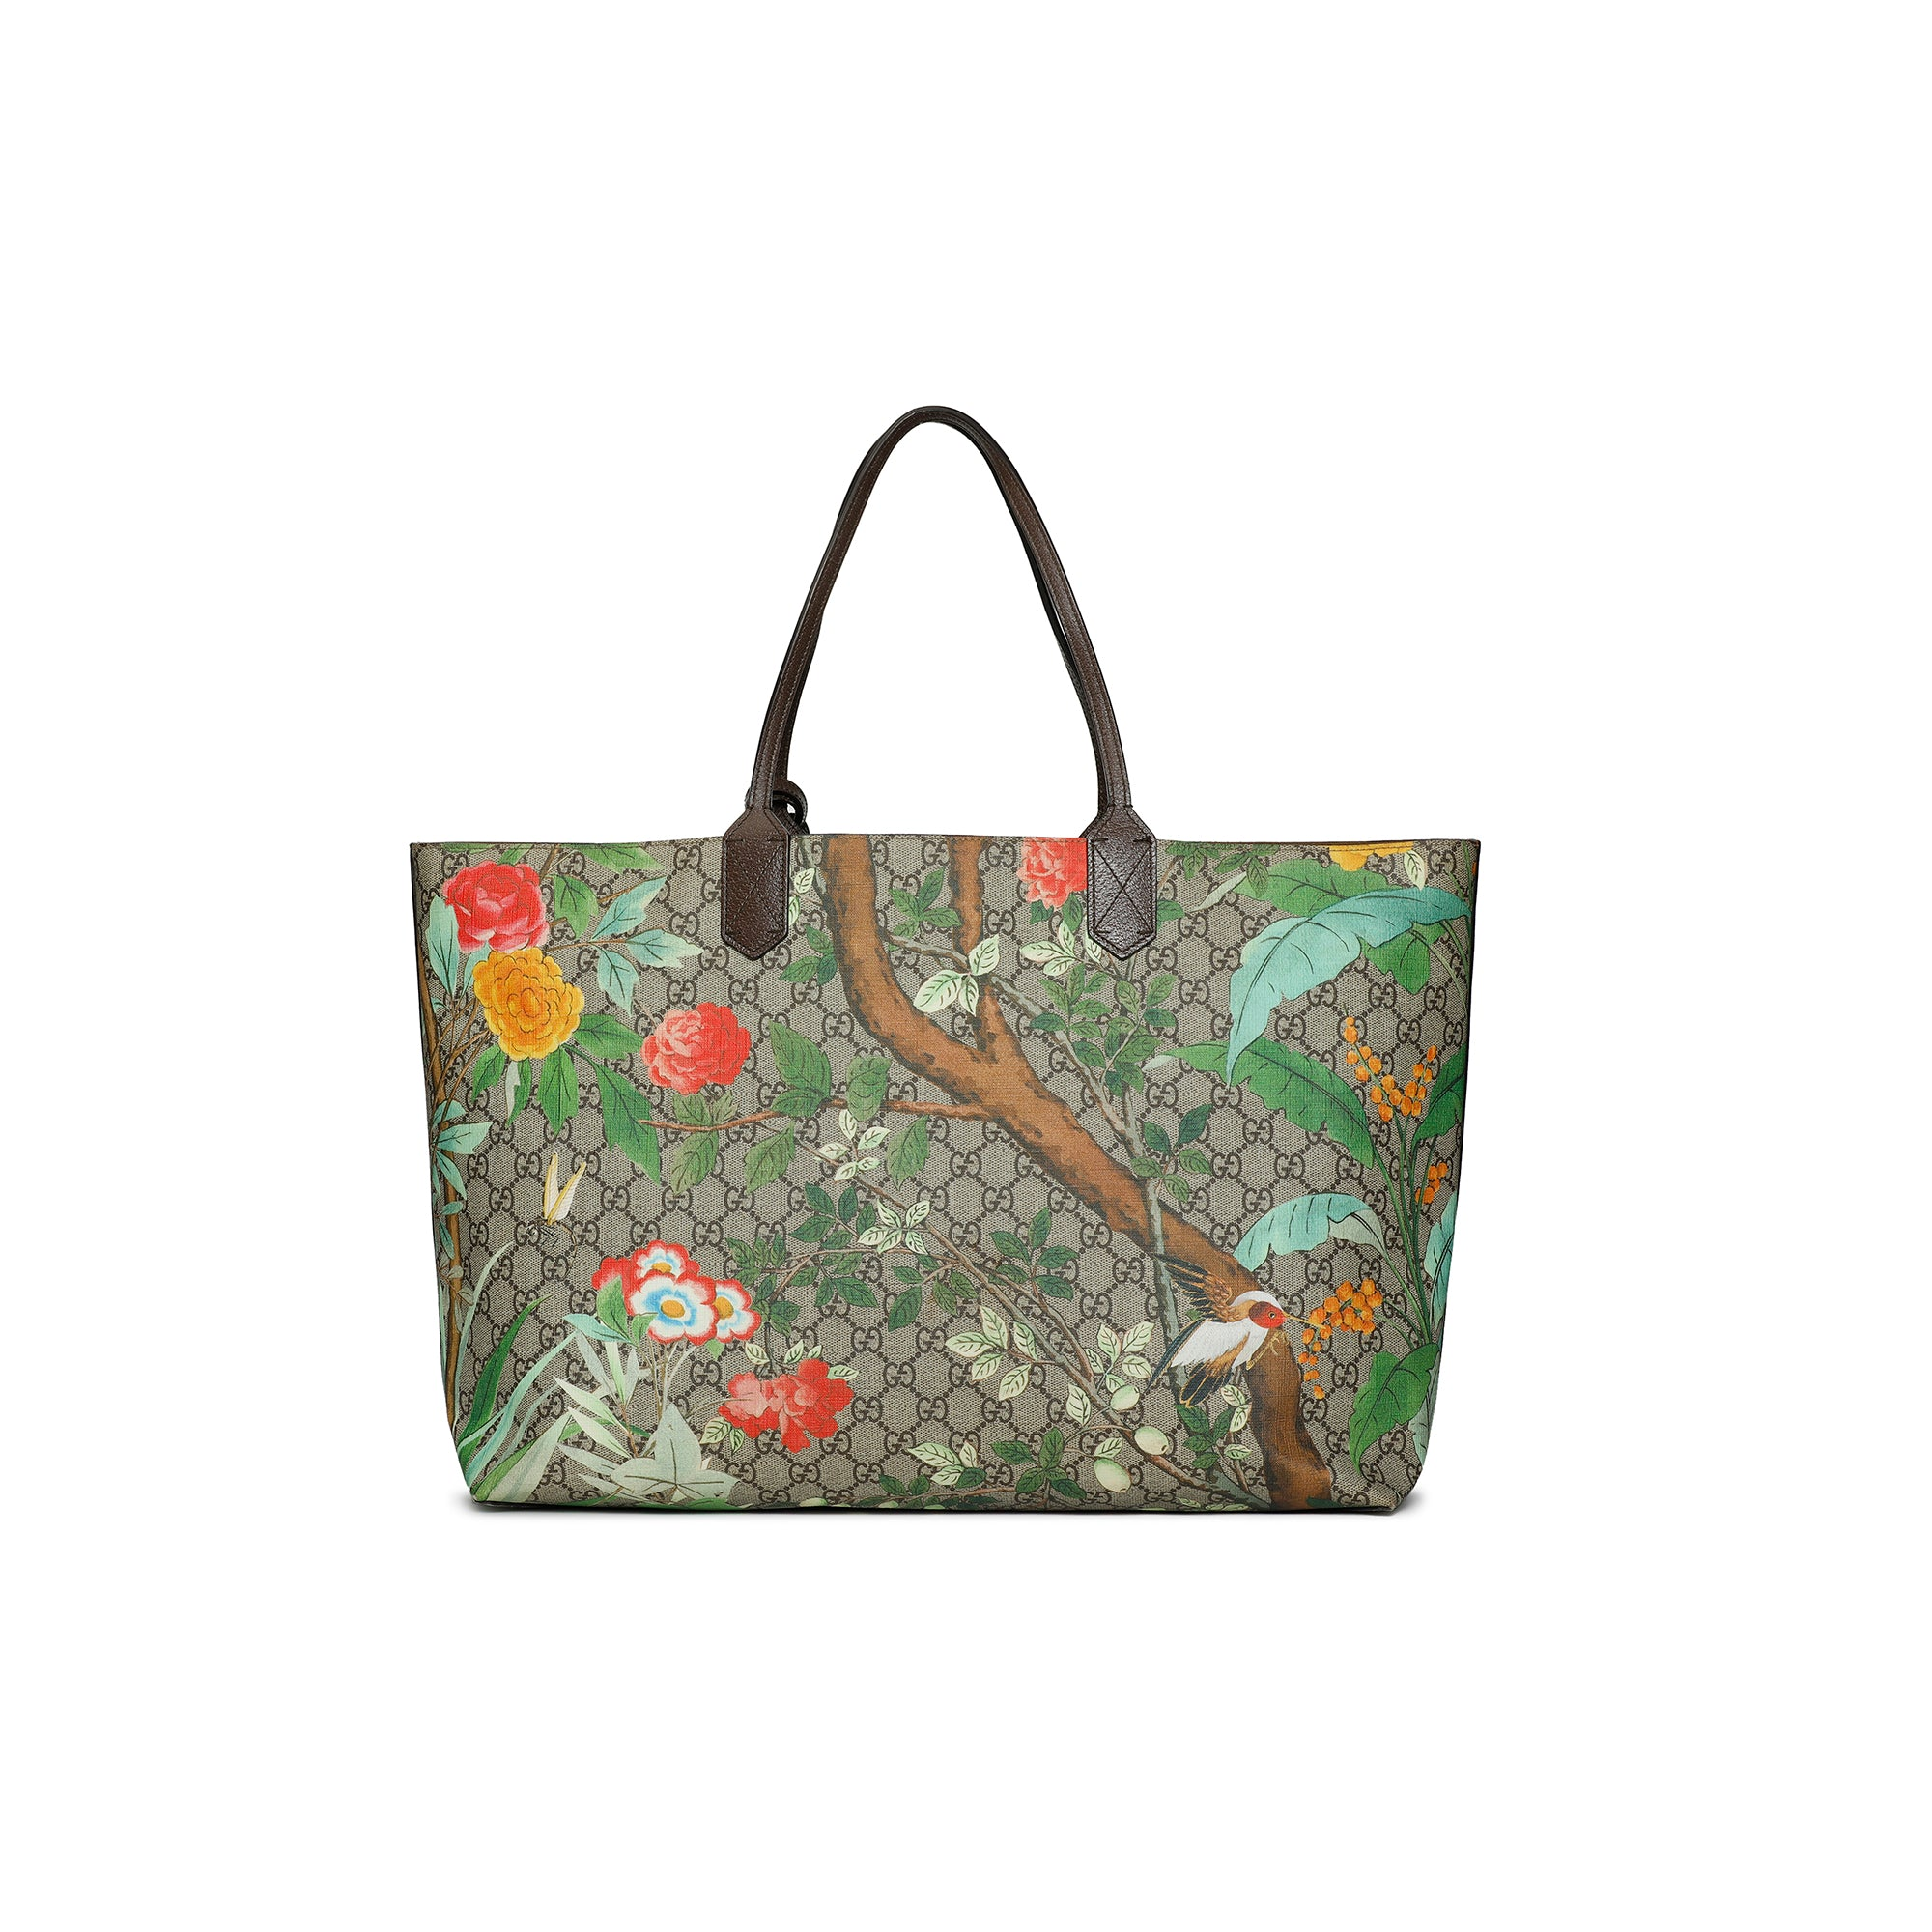 Gucci Shopping Tote Tian Print GG Coated Canvas Large